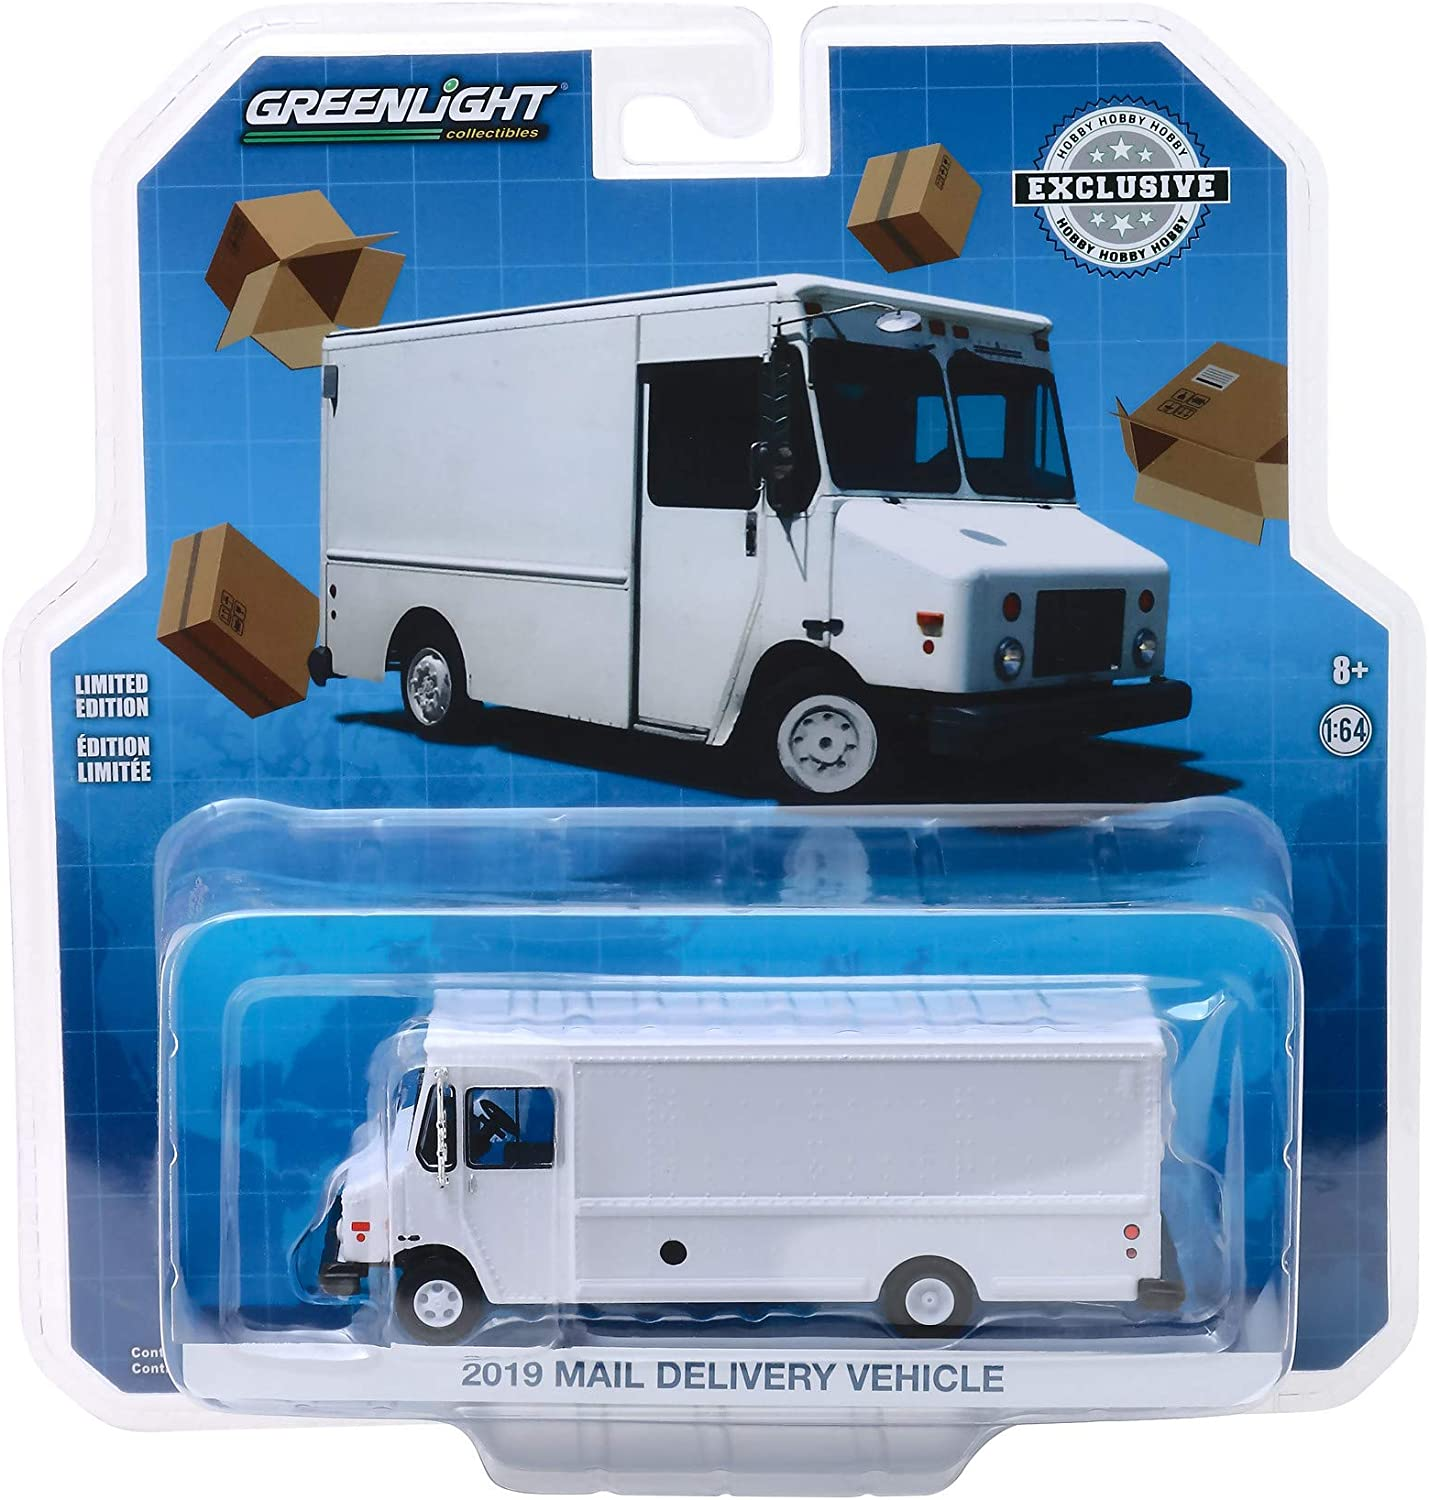 2019 Mail Delivery Vehicle White Hobby Exclusive 1/64 Diecast Model by Greenlight 30097